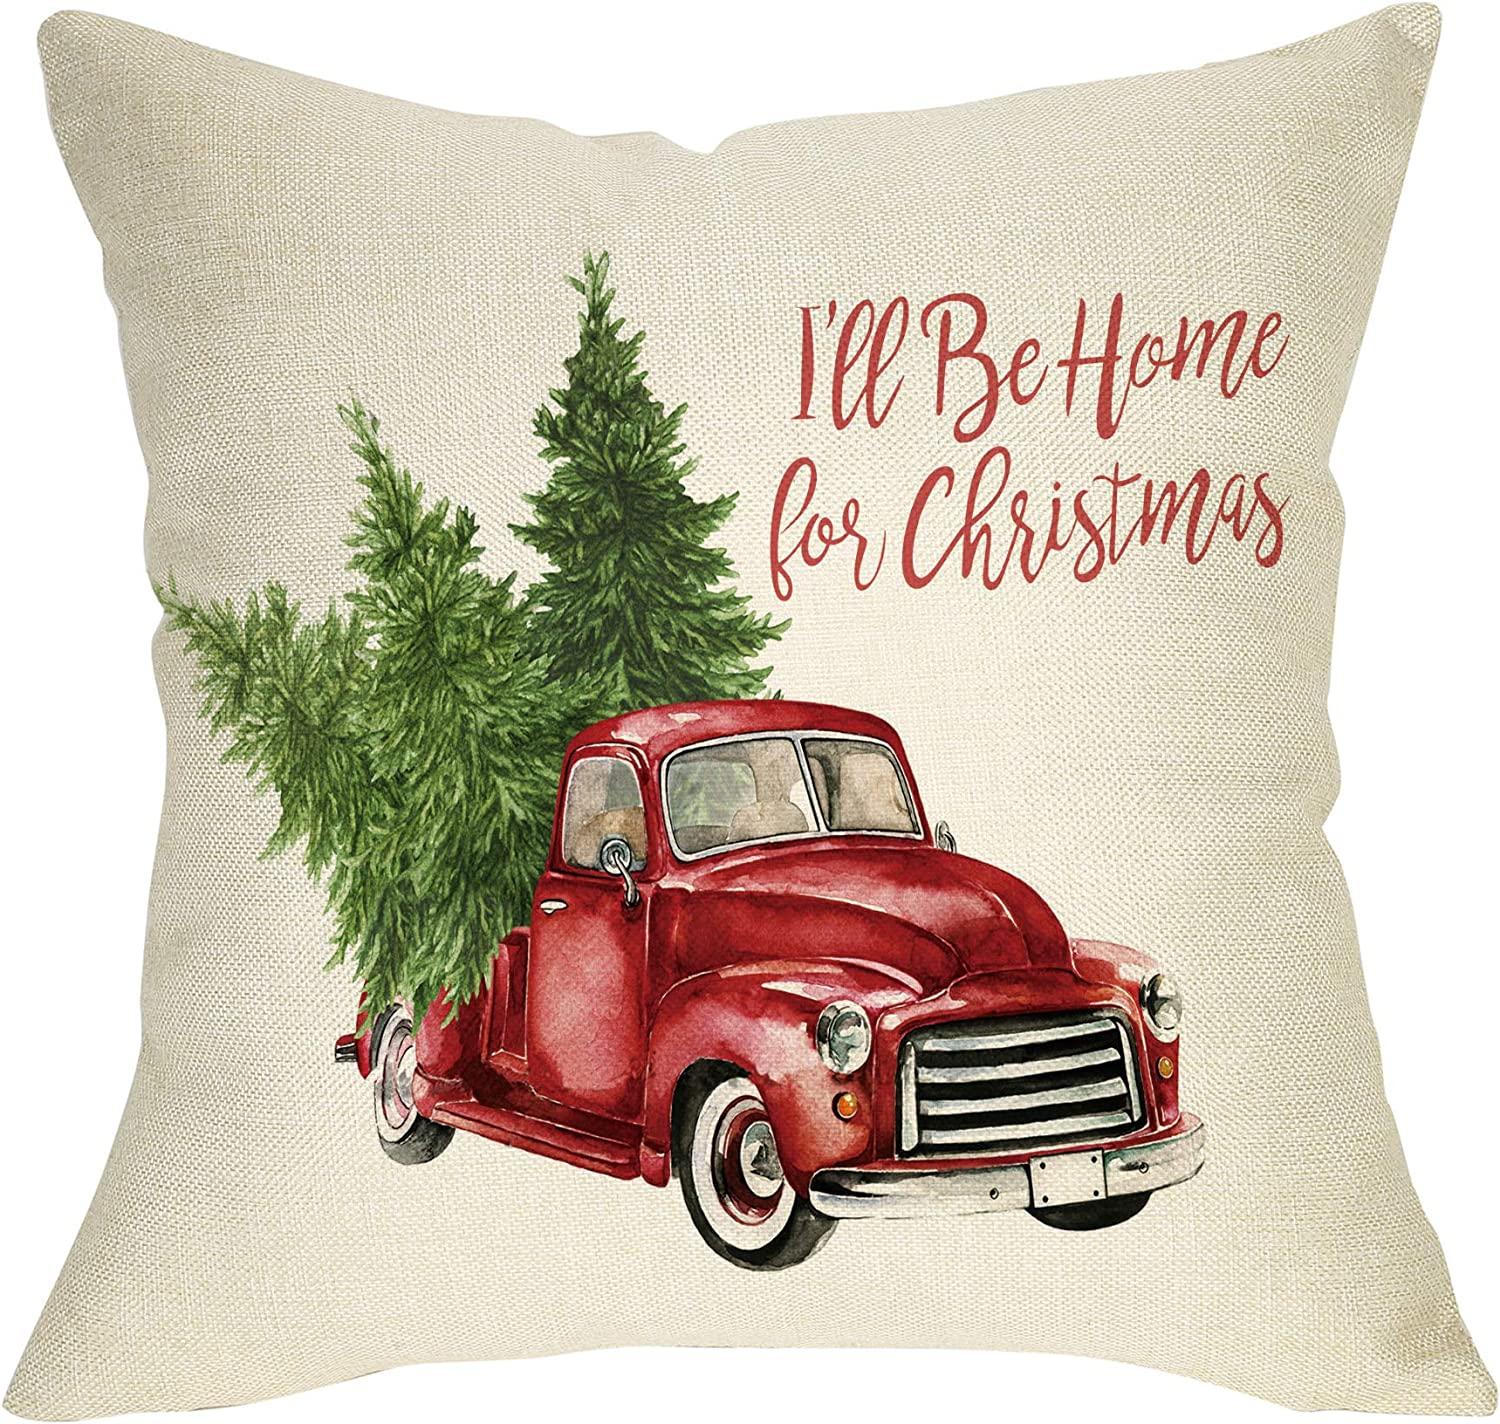 """Softxpp Christmas Farmhouse Decorative Throw Pillow Cover Vintage Red Truck with Tree Winter Holiday Decoration I'll Be Home for Xmas Sign Decor Cushion Case for Sofa Couch 18"""" x 18""""Cotton Linen"""